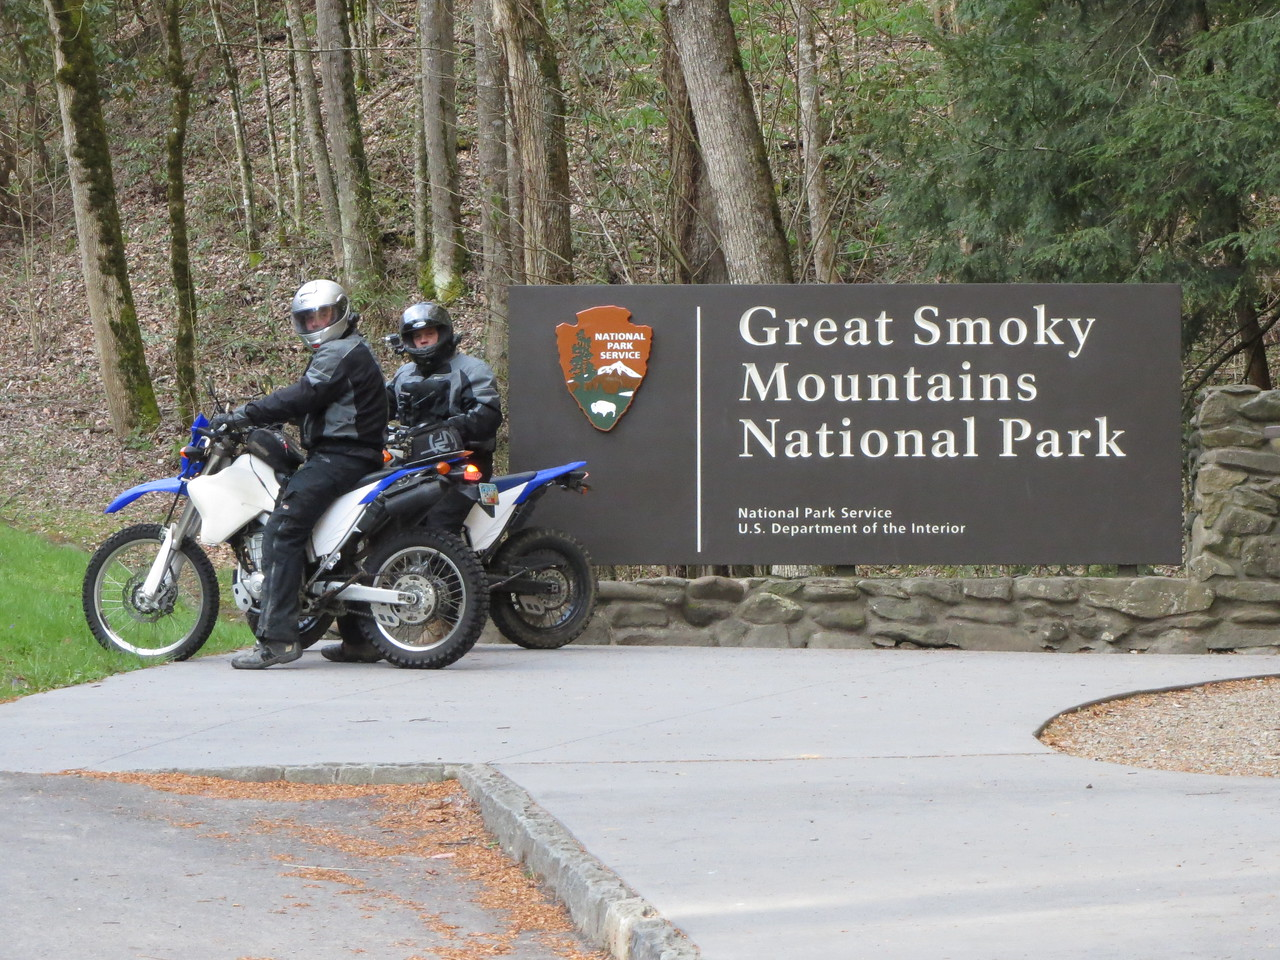 The next morning, we took off to ride the Smokies, Deals Gap, Cherohala, 28, all the great roads.  Alan (L) and Kyle at the north entrance to the GSMNP.